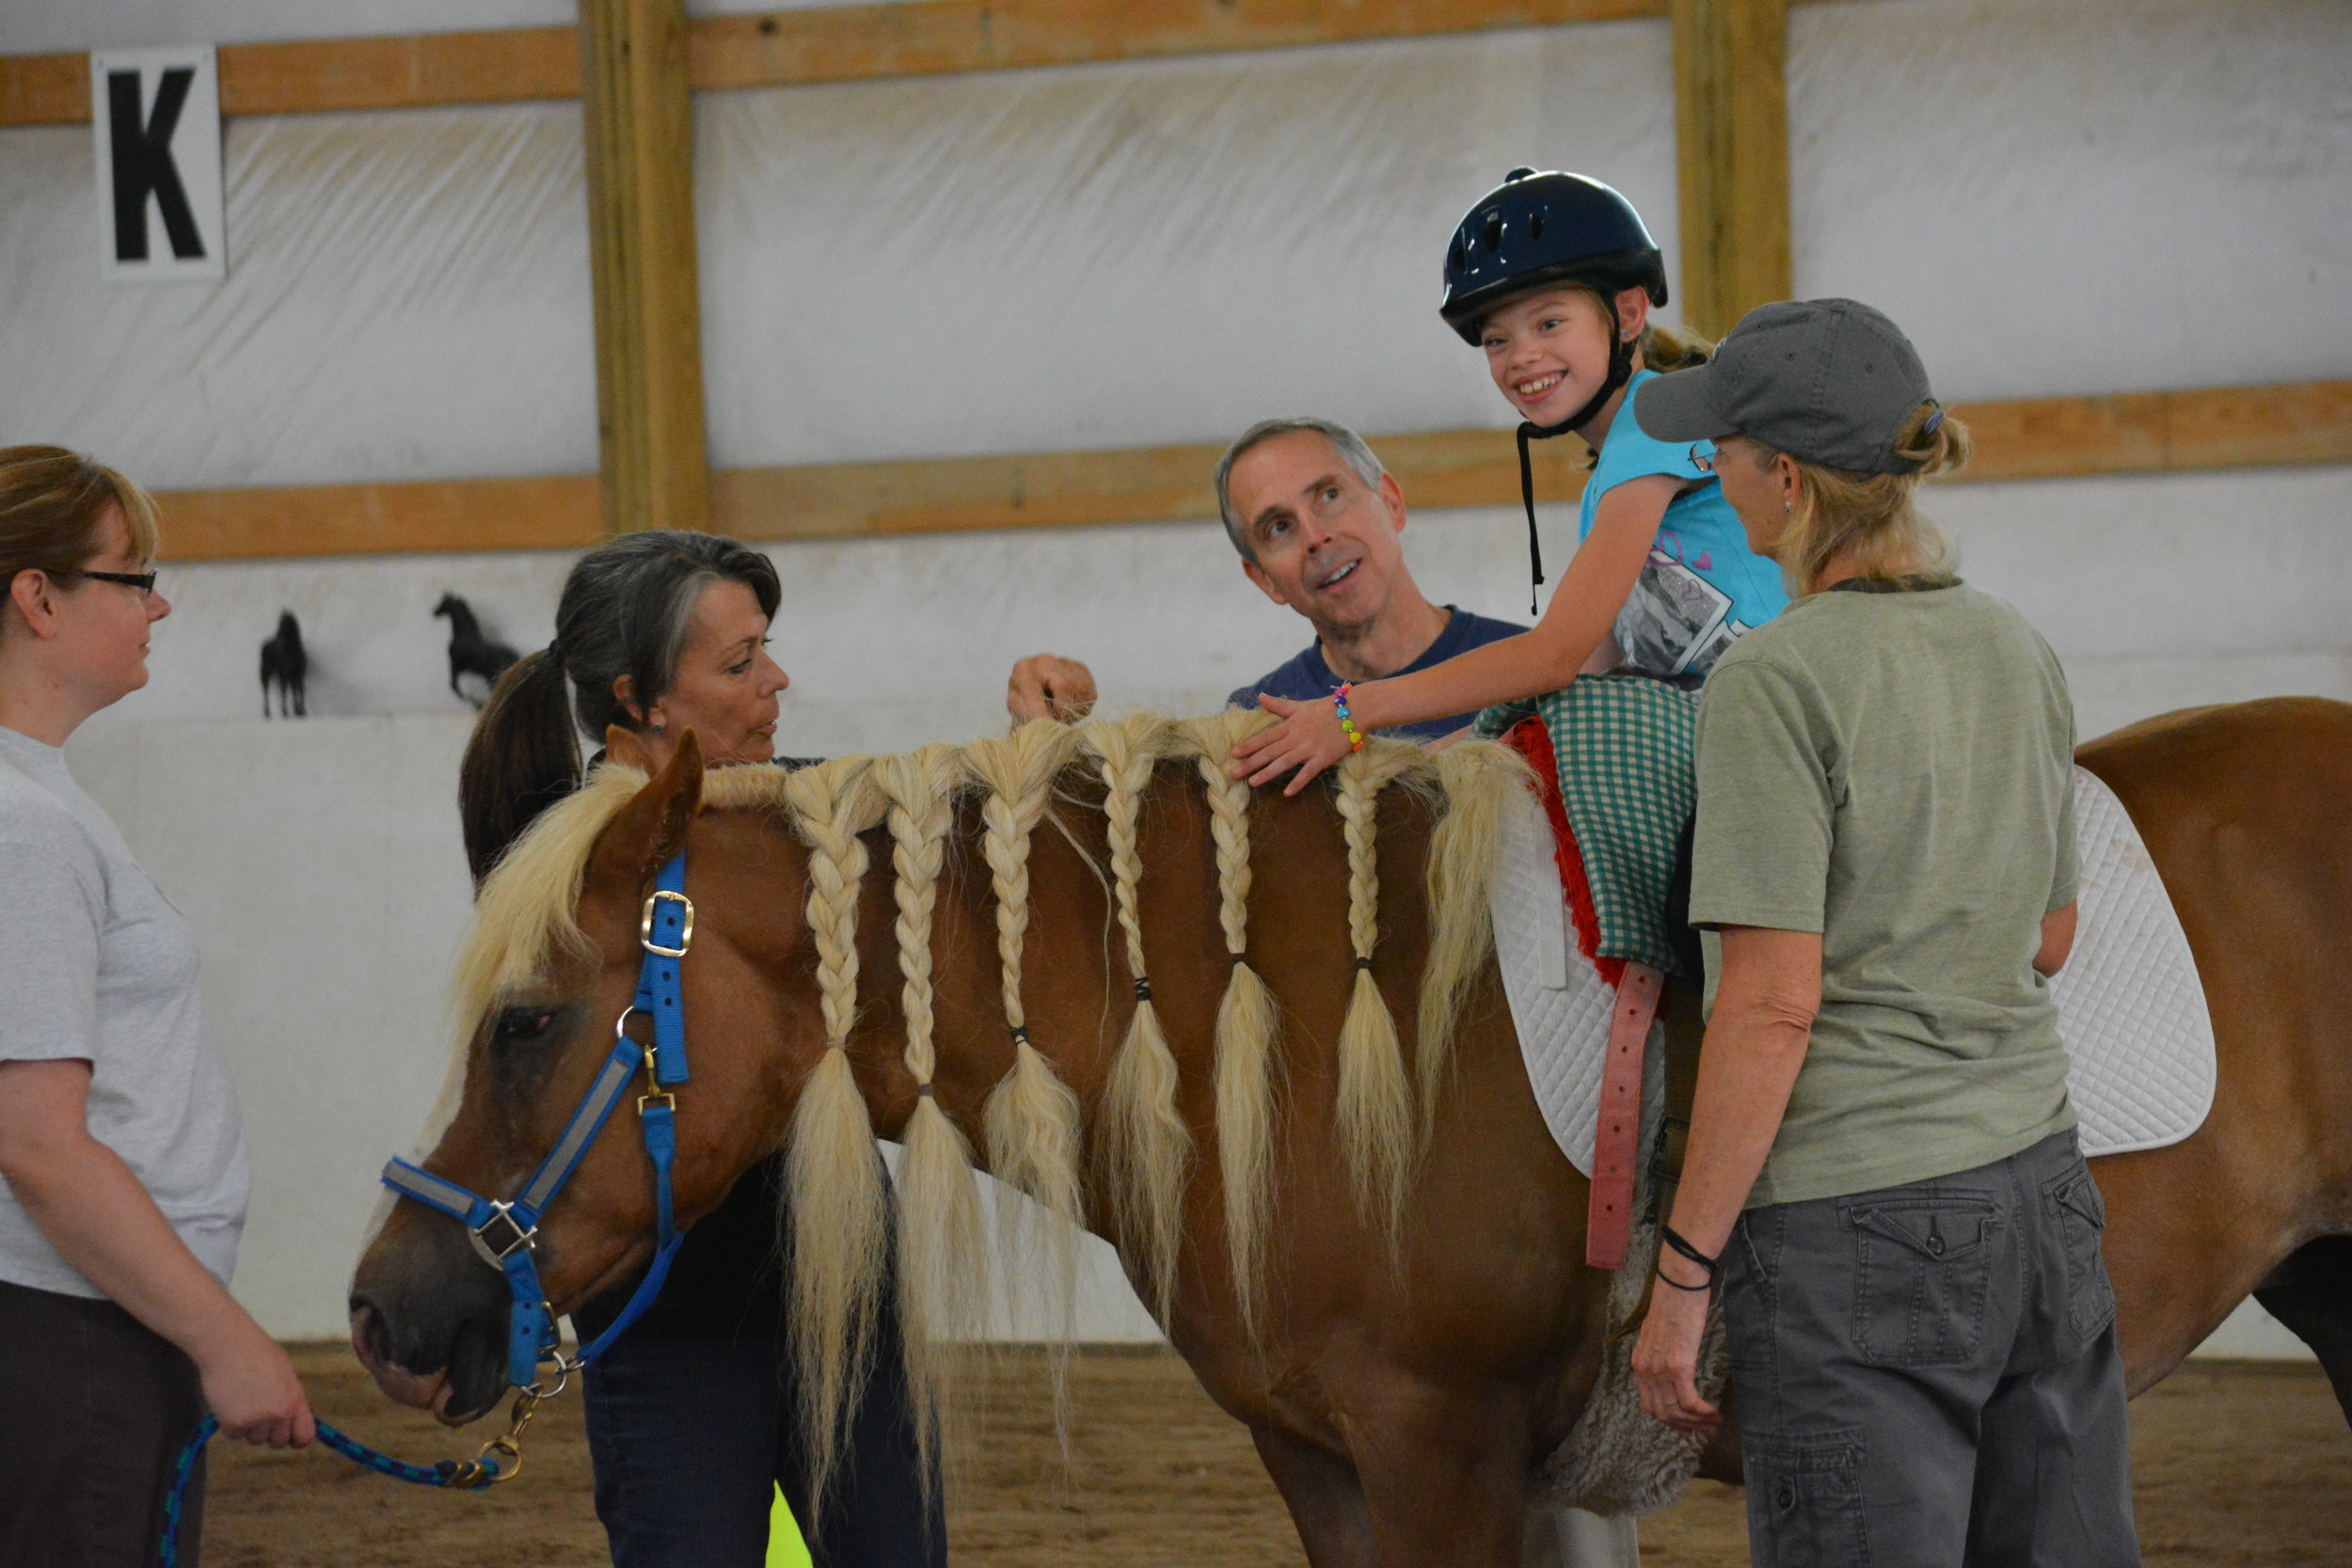 Arena Volunteers - Volunteers serve as sidewalkers and horse leaders. They directly assist participants with riding or ground lessons.